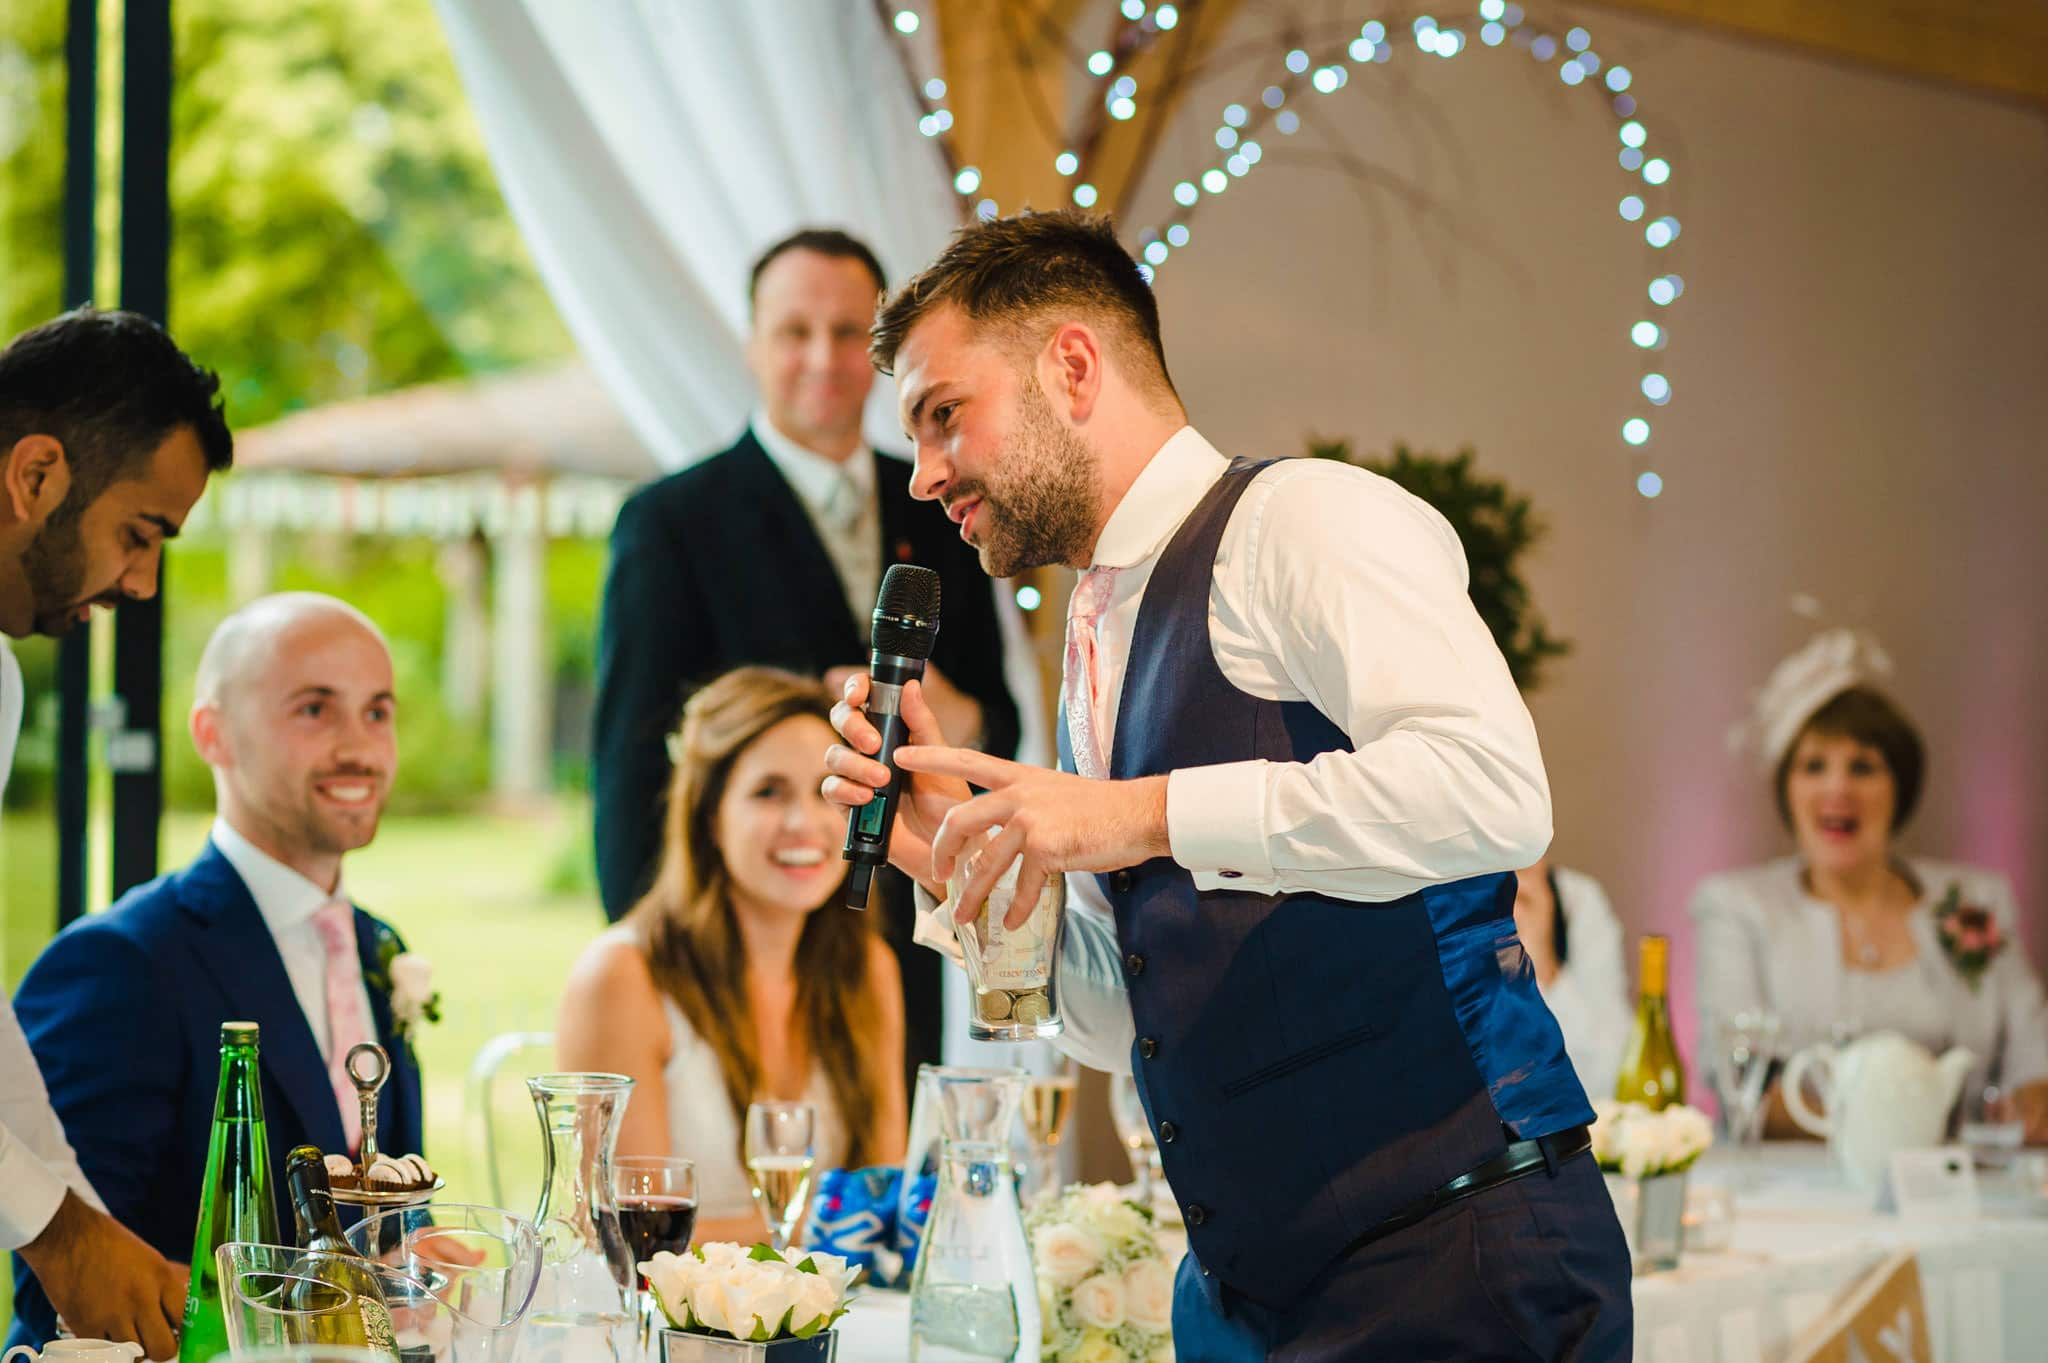 Wedding at Redhouse Barn in Stoke Prior, Worcestershire 149